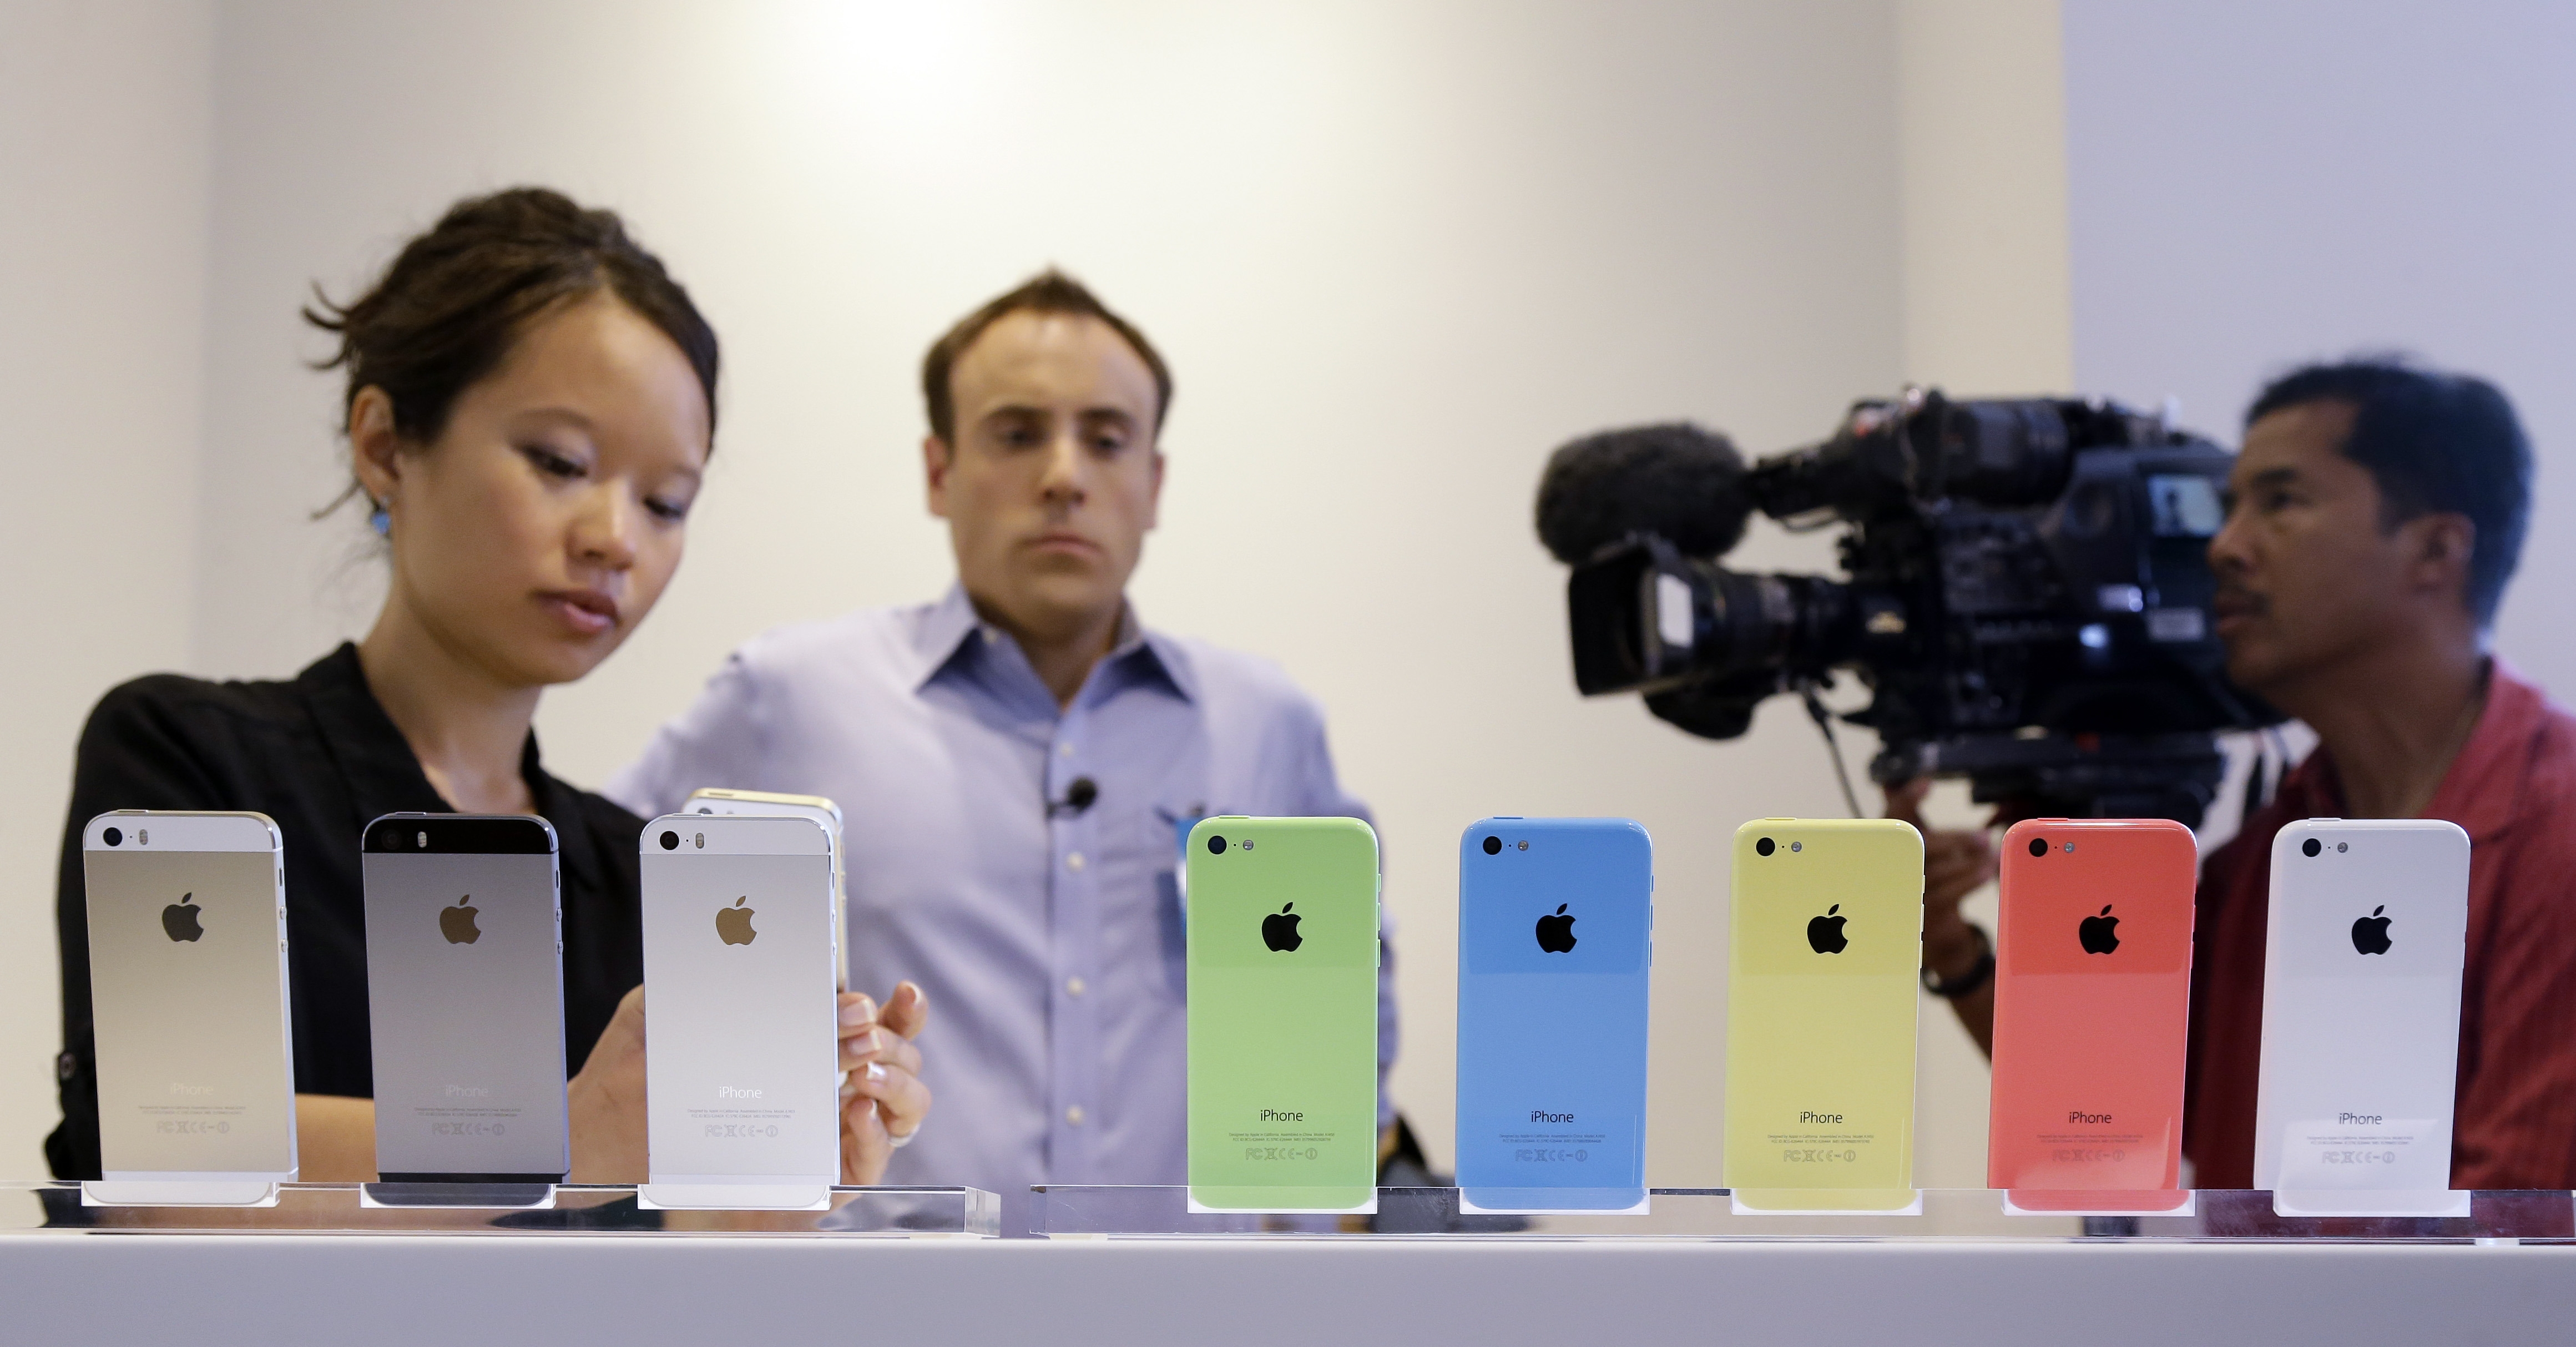 Members of the media review the new iPhone  5C and 5S during a new product announcement at Apple headquarters on Tuesday in Cupertino, Calif. Analysts criticized Apple's latest iPhones for lacking new features and for being too expensive.